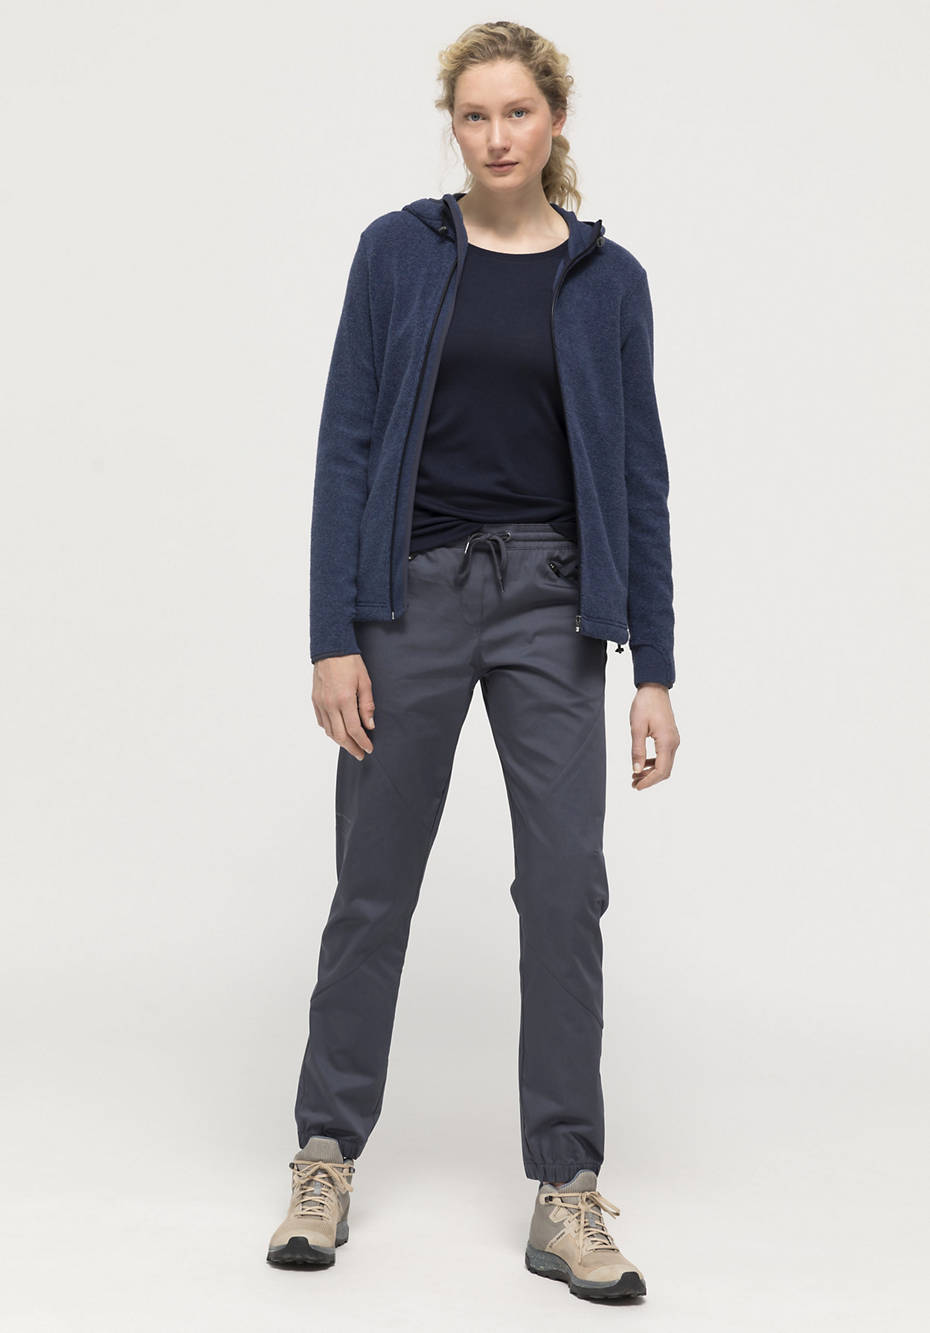 Outdoor jogging pants made of organic cotton